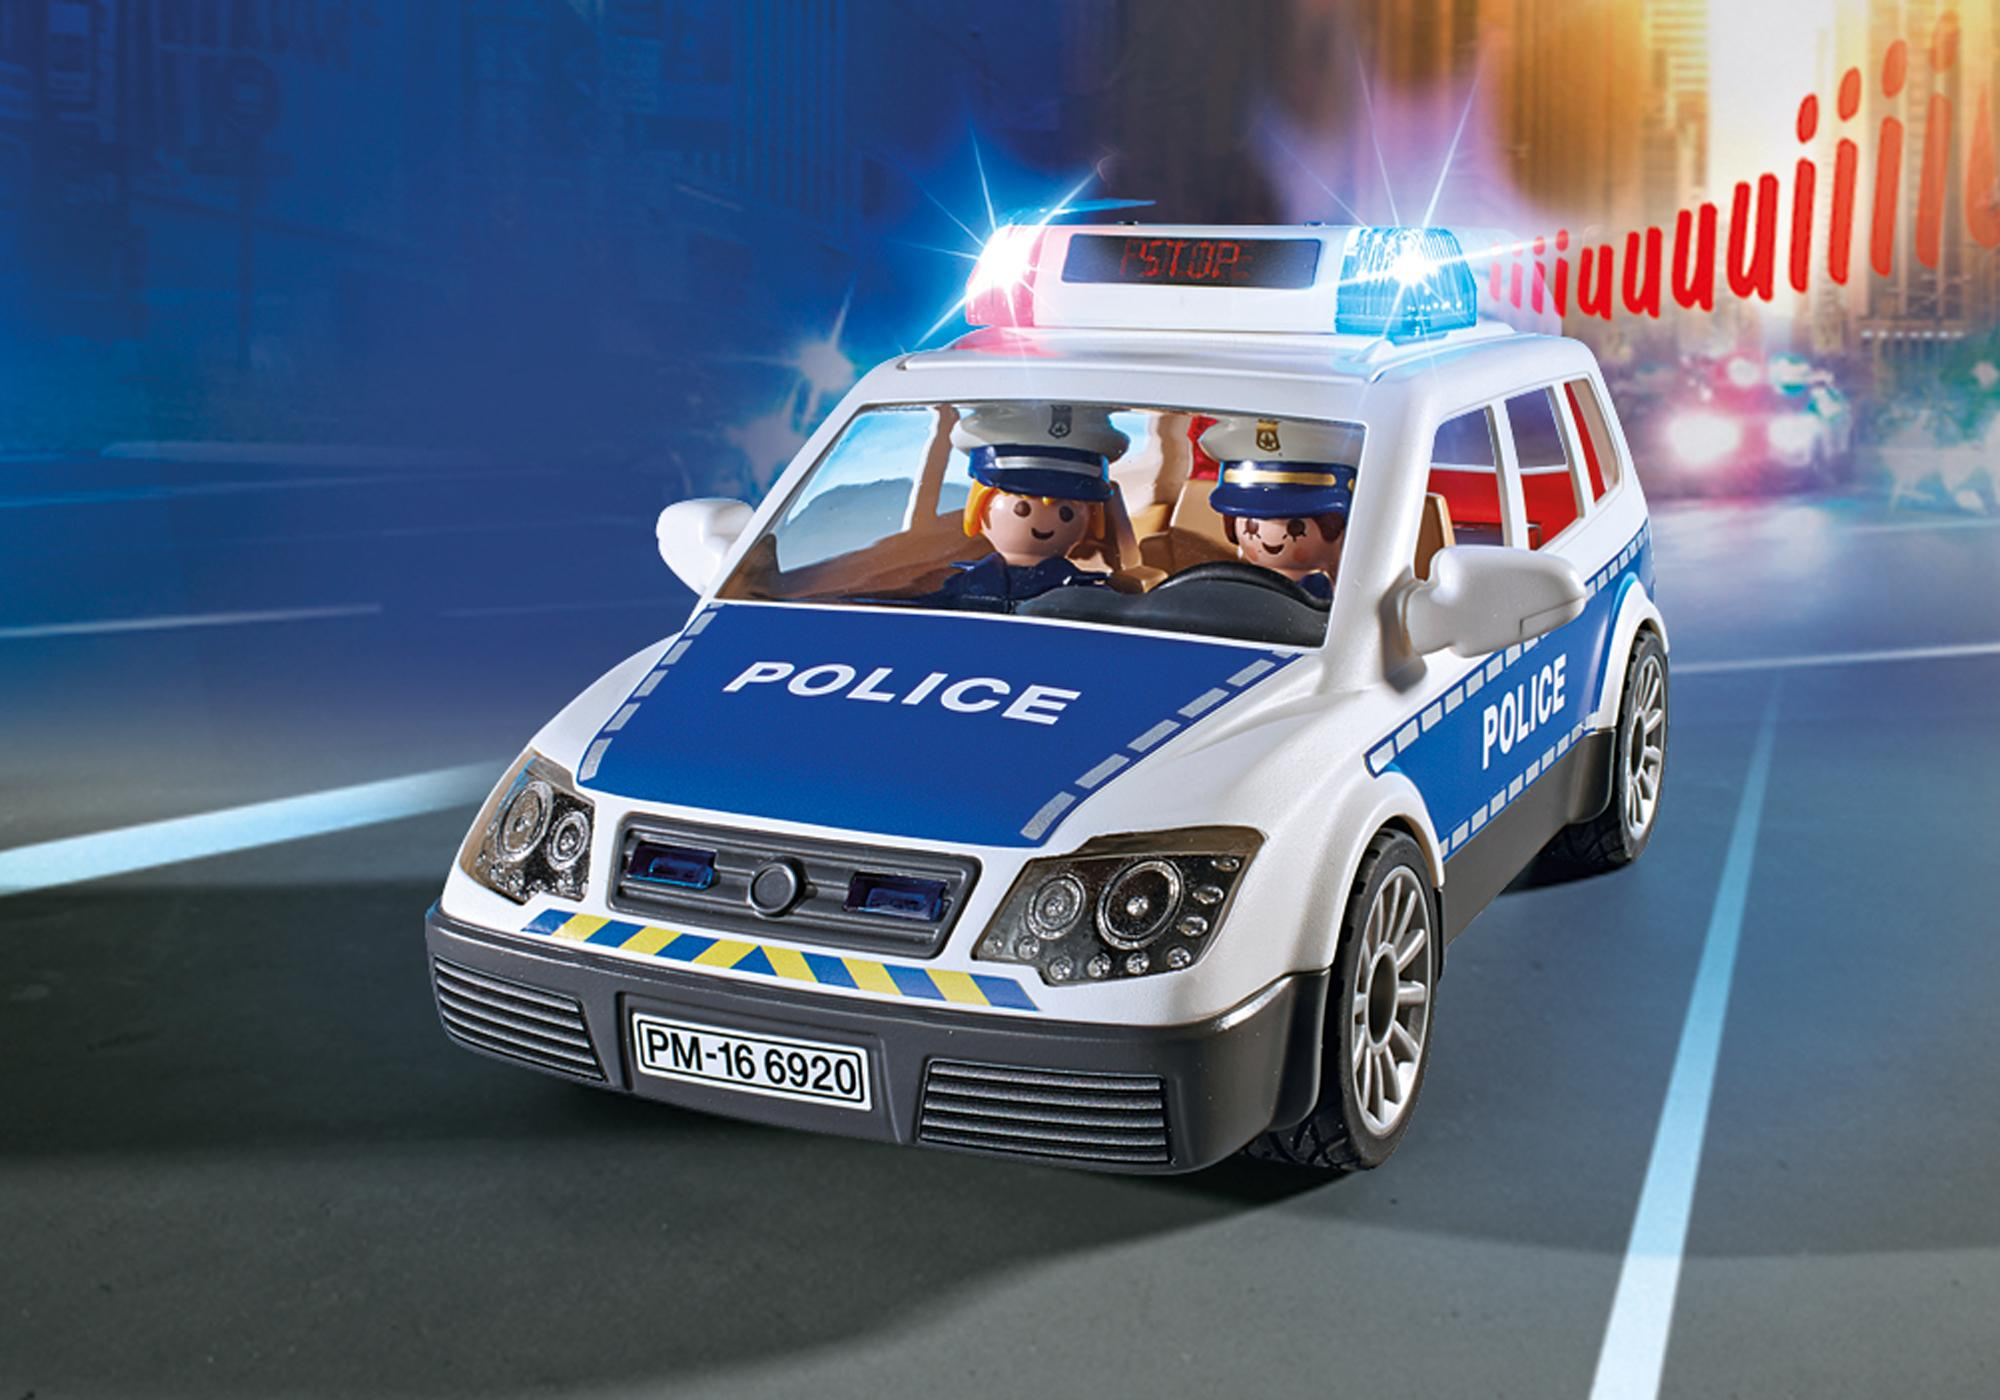 http://media.playmobil.com/i/playmobil/6873_product_extra1